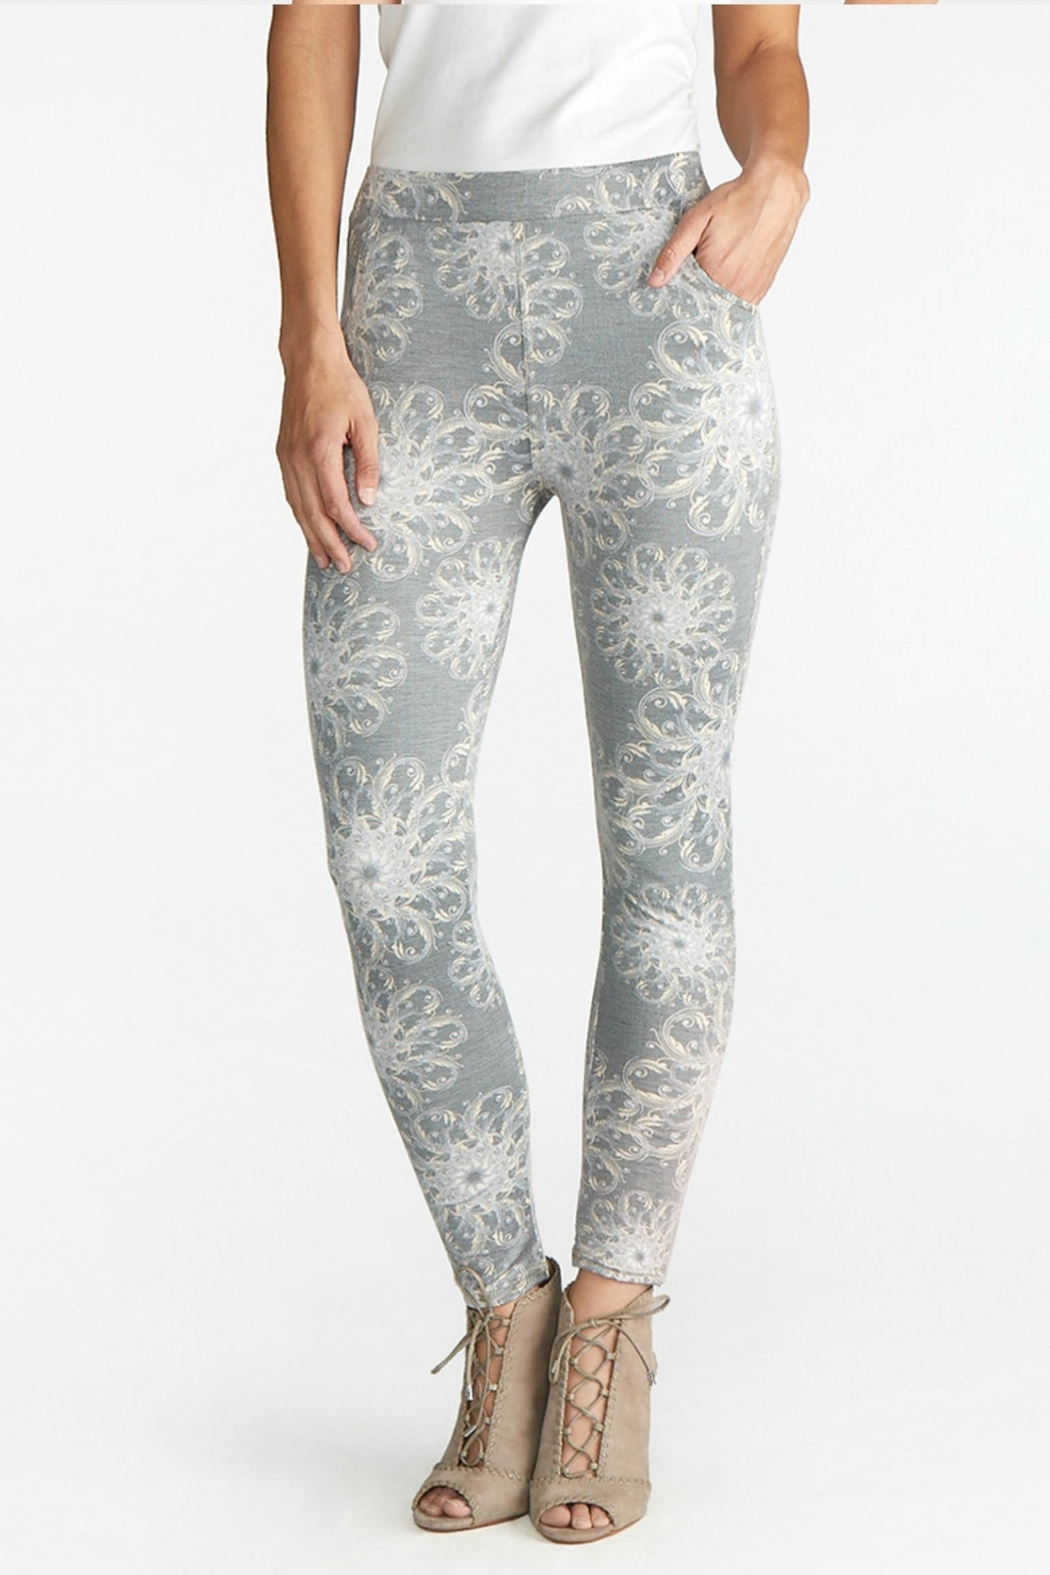 Coco + Carmen Gray-Print Maisey Pocket-Leggings - Main Image